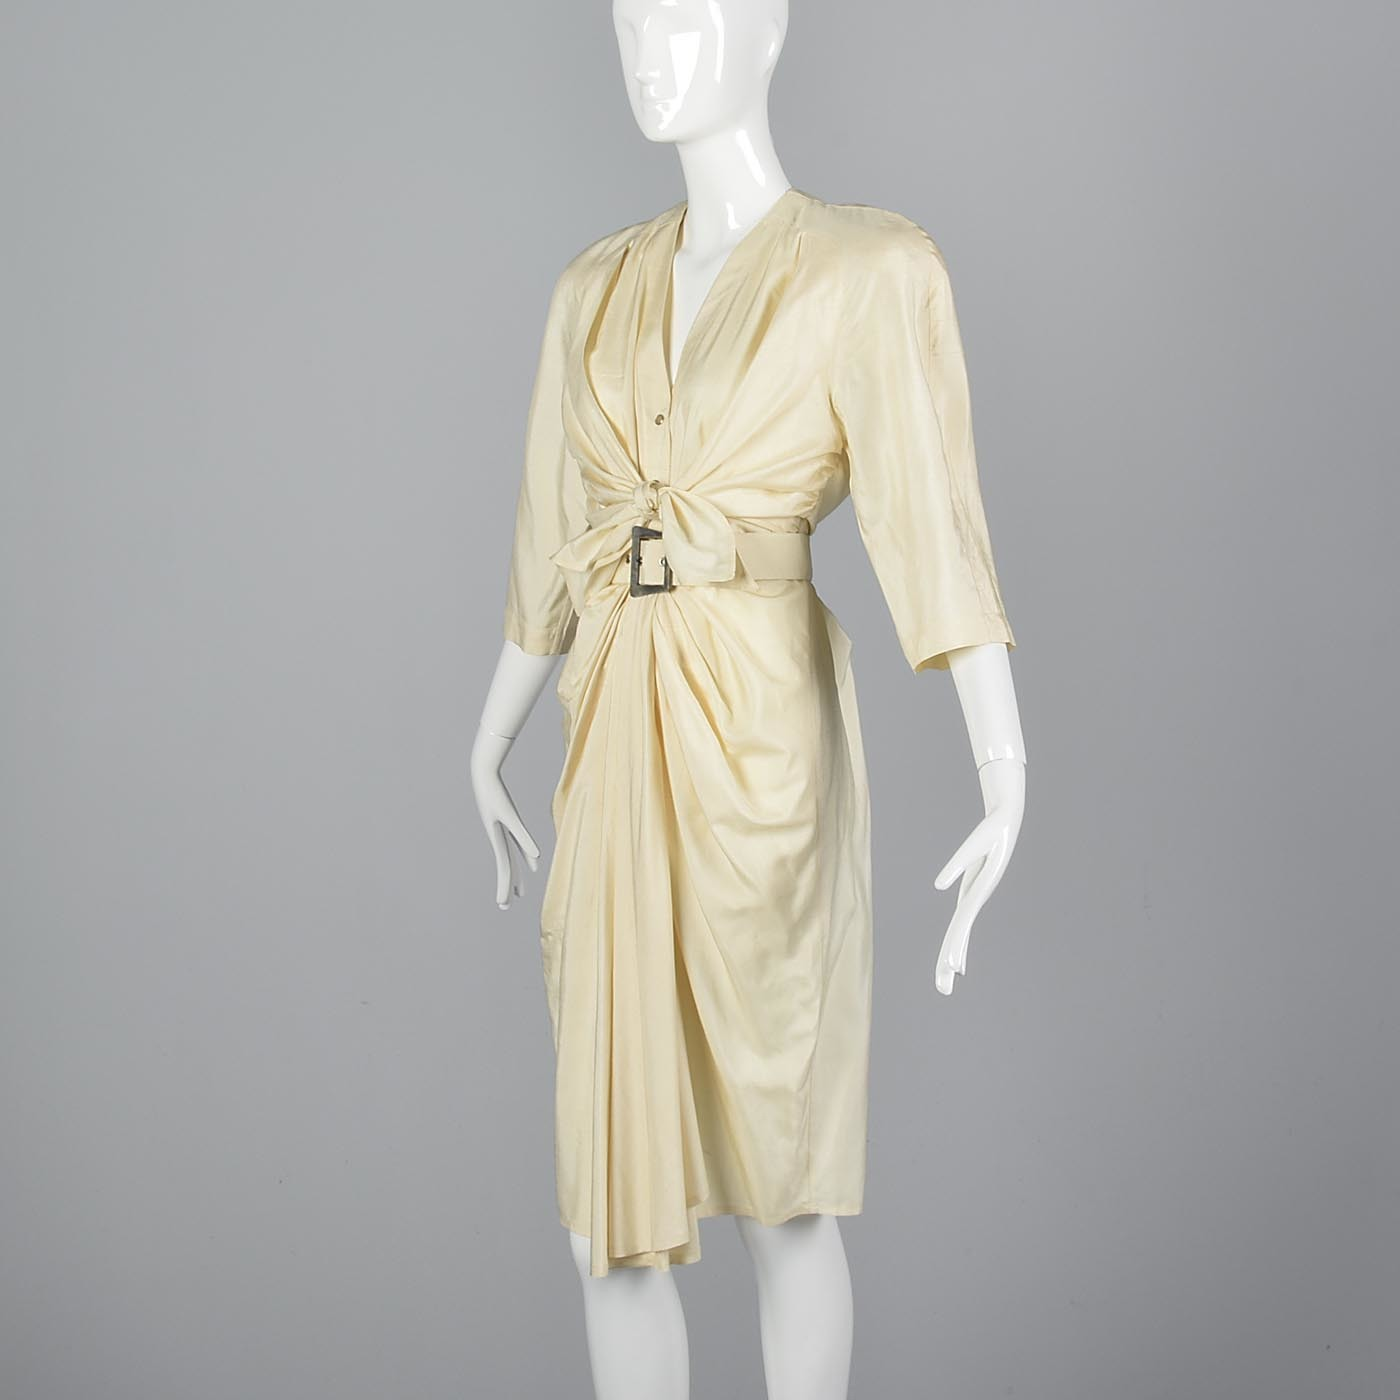 1980s Thierry Mugler Cream Silk Dress